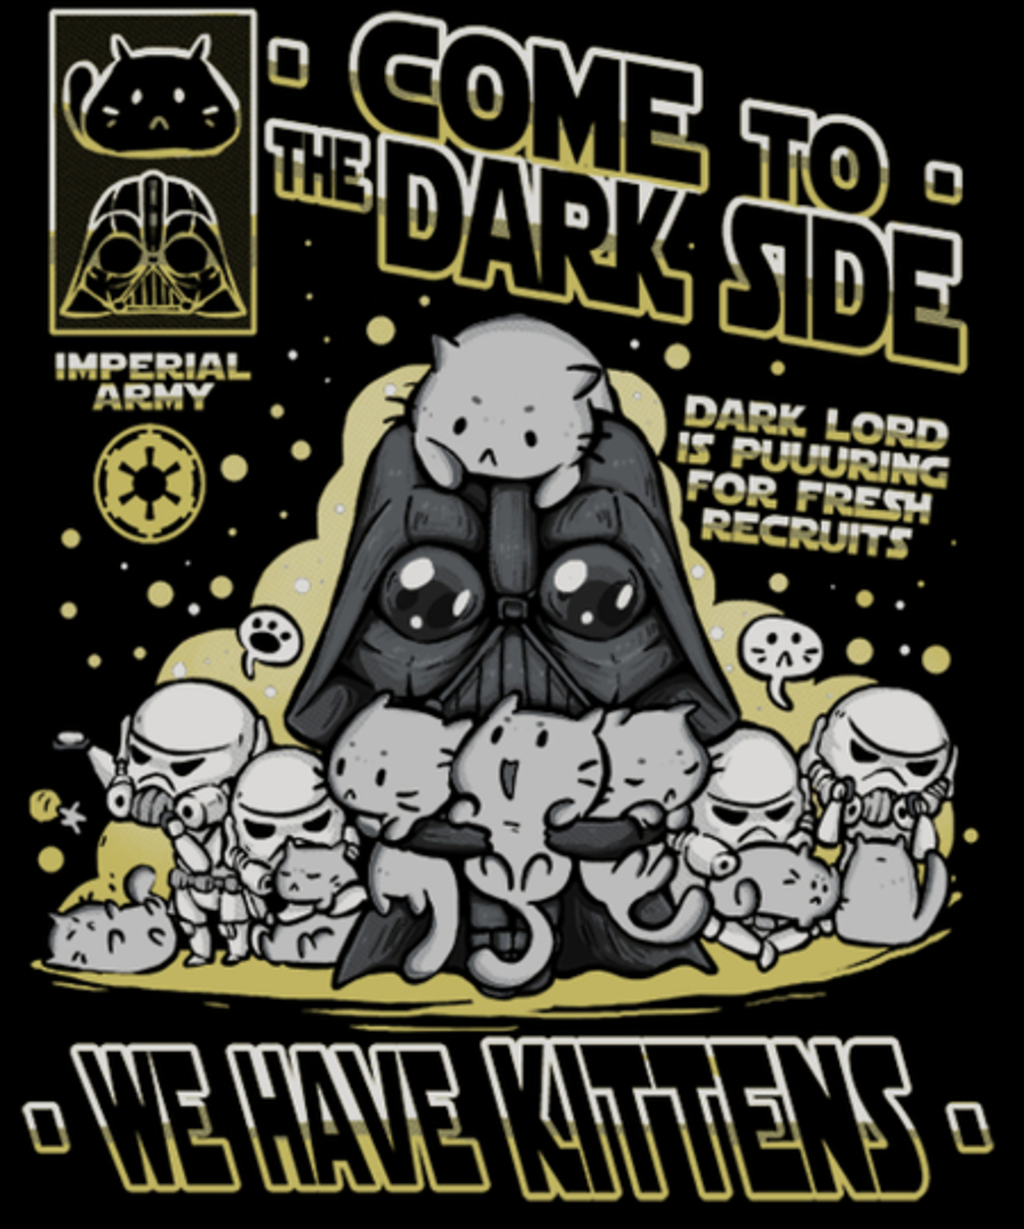 Qwertee: We have Kittens